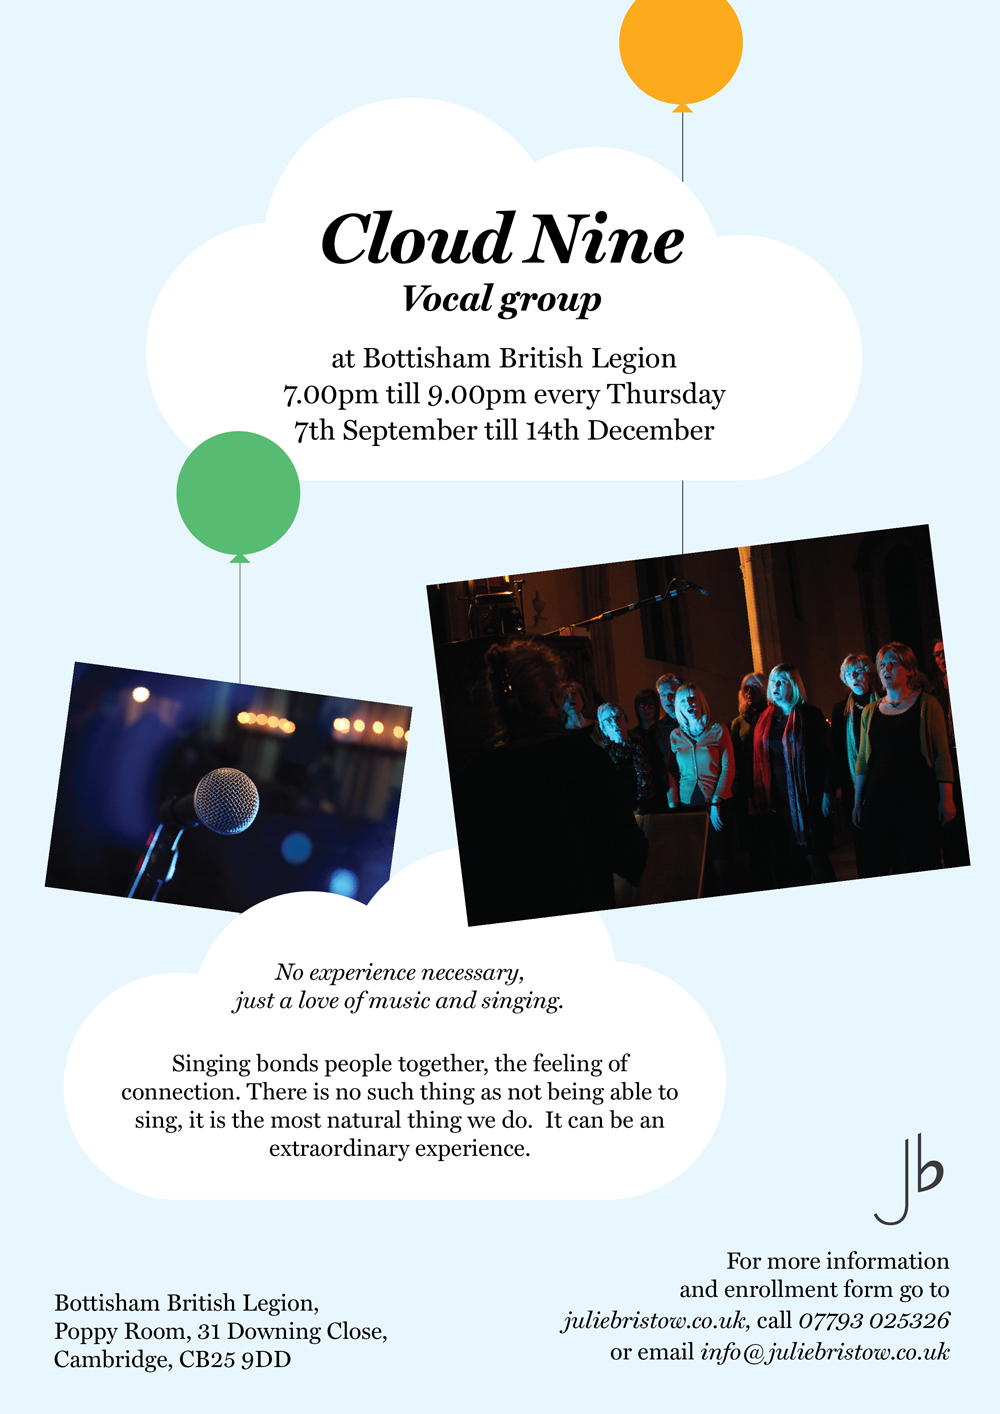 Cloud Nine Vocal Group - Bottisham